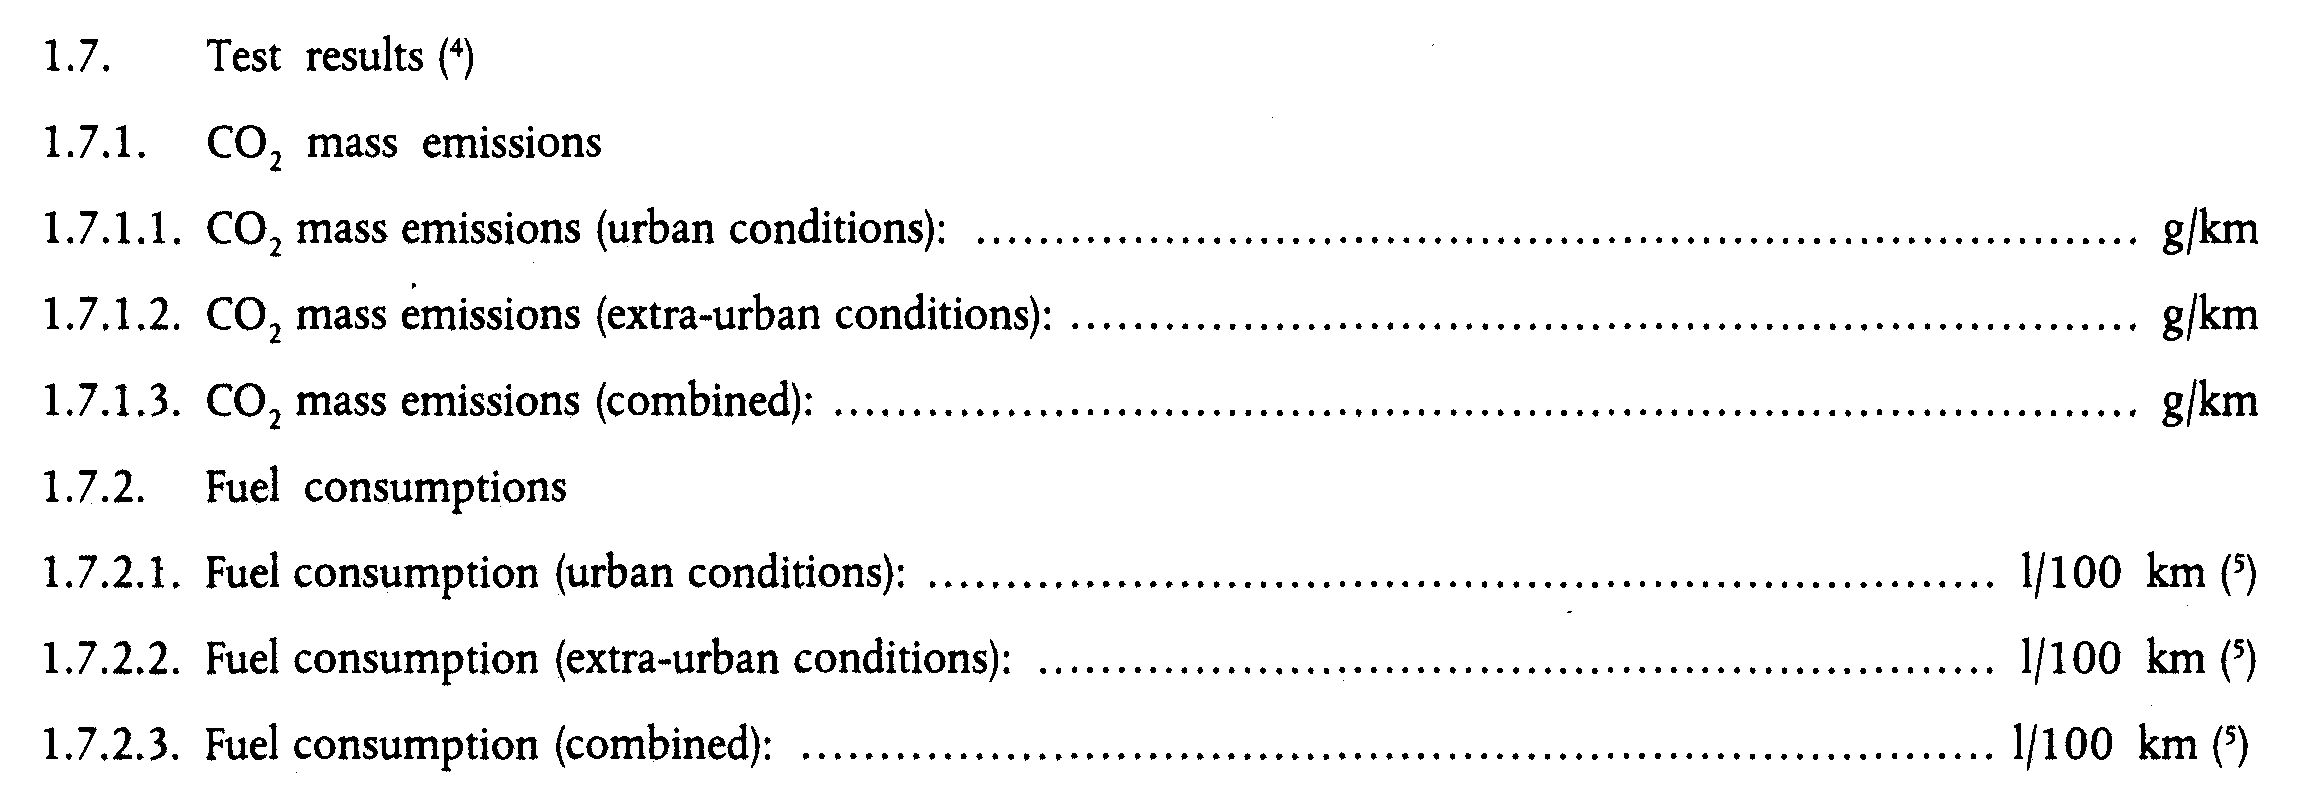 1 item 1 7 of the addendum is replaced by the following